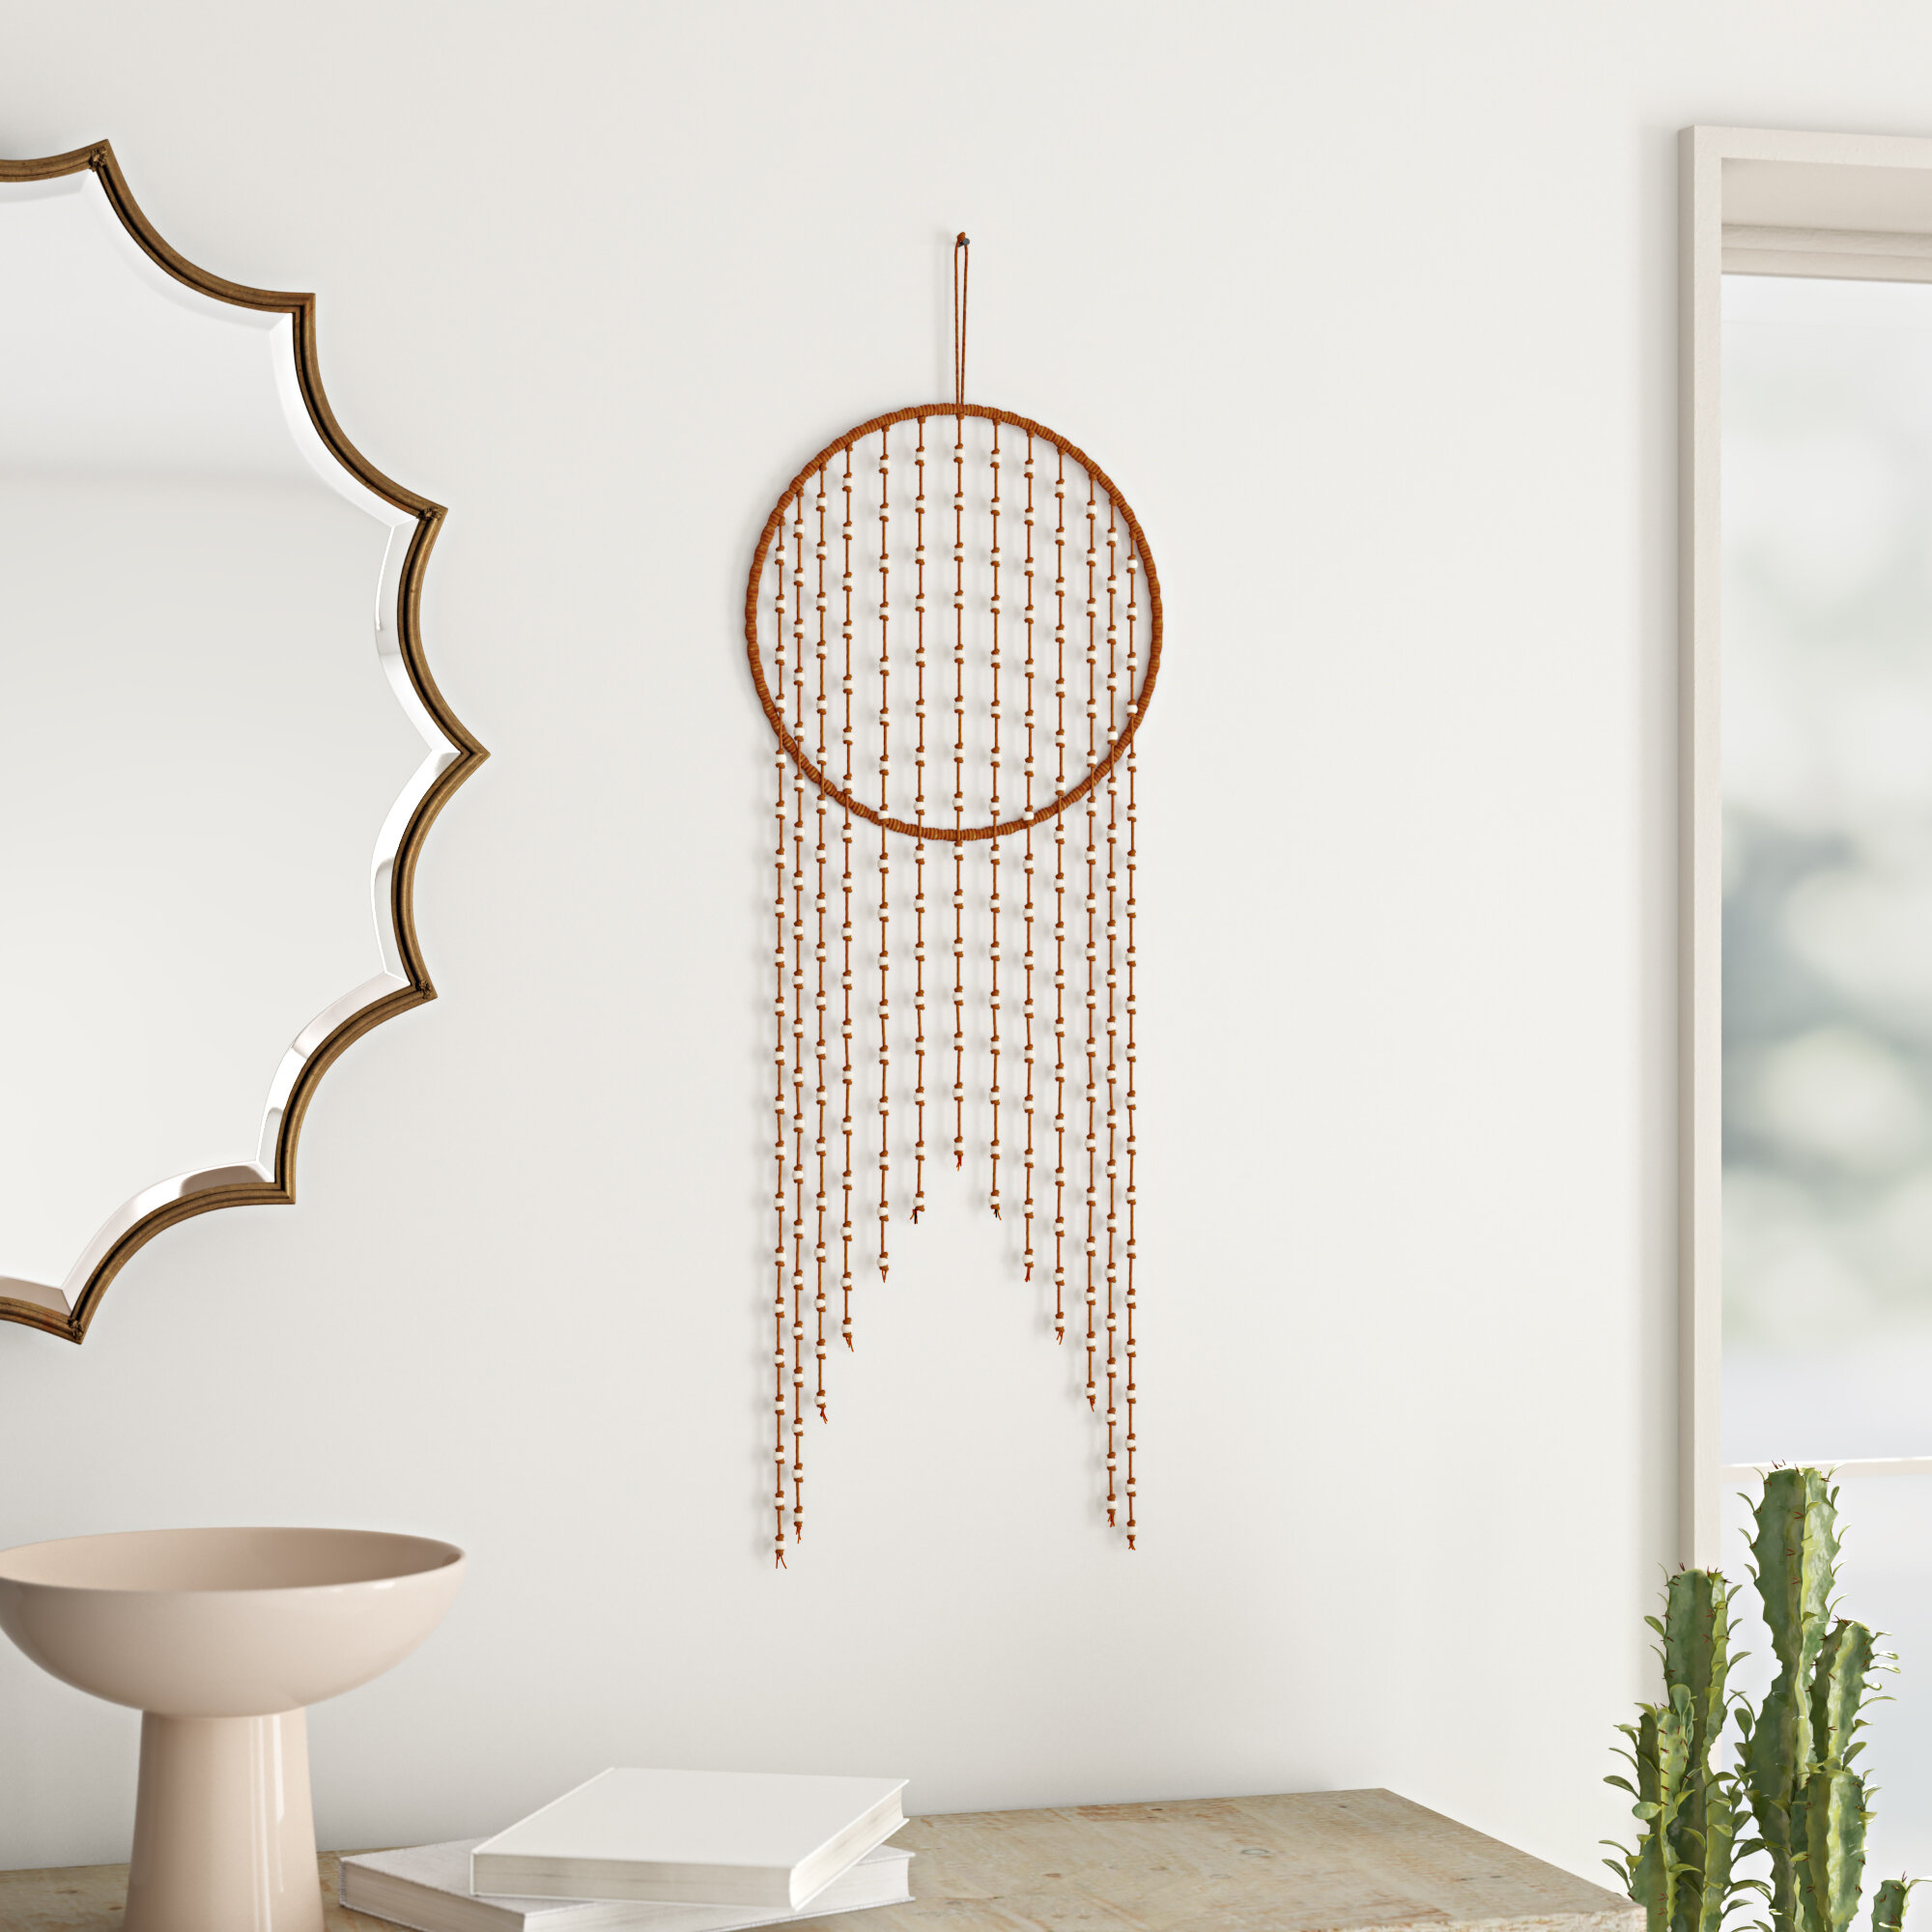 Wayfair | Wall Hanging Tapestries You'll Love In 2021 With Regard To Most Up To Date Blended Fabric Clancy Wool And Cotton Wall Hangings With Hanging Accessories Included (View 10 of 20)